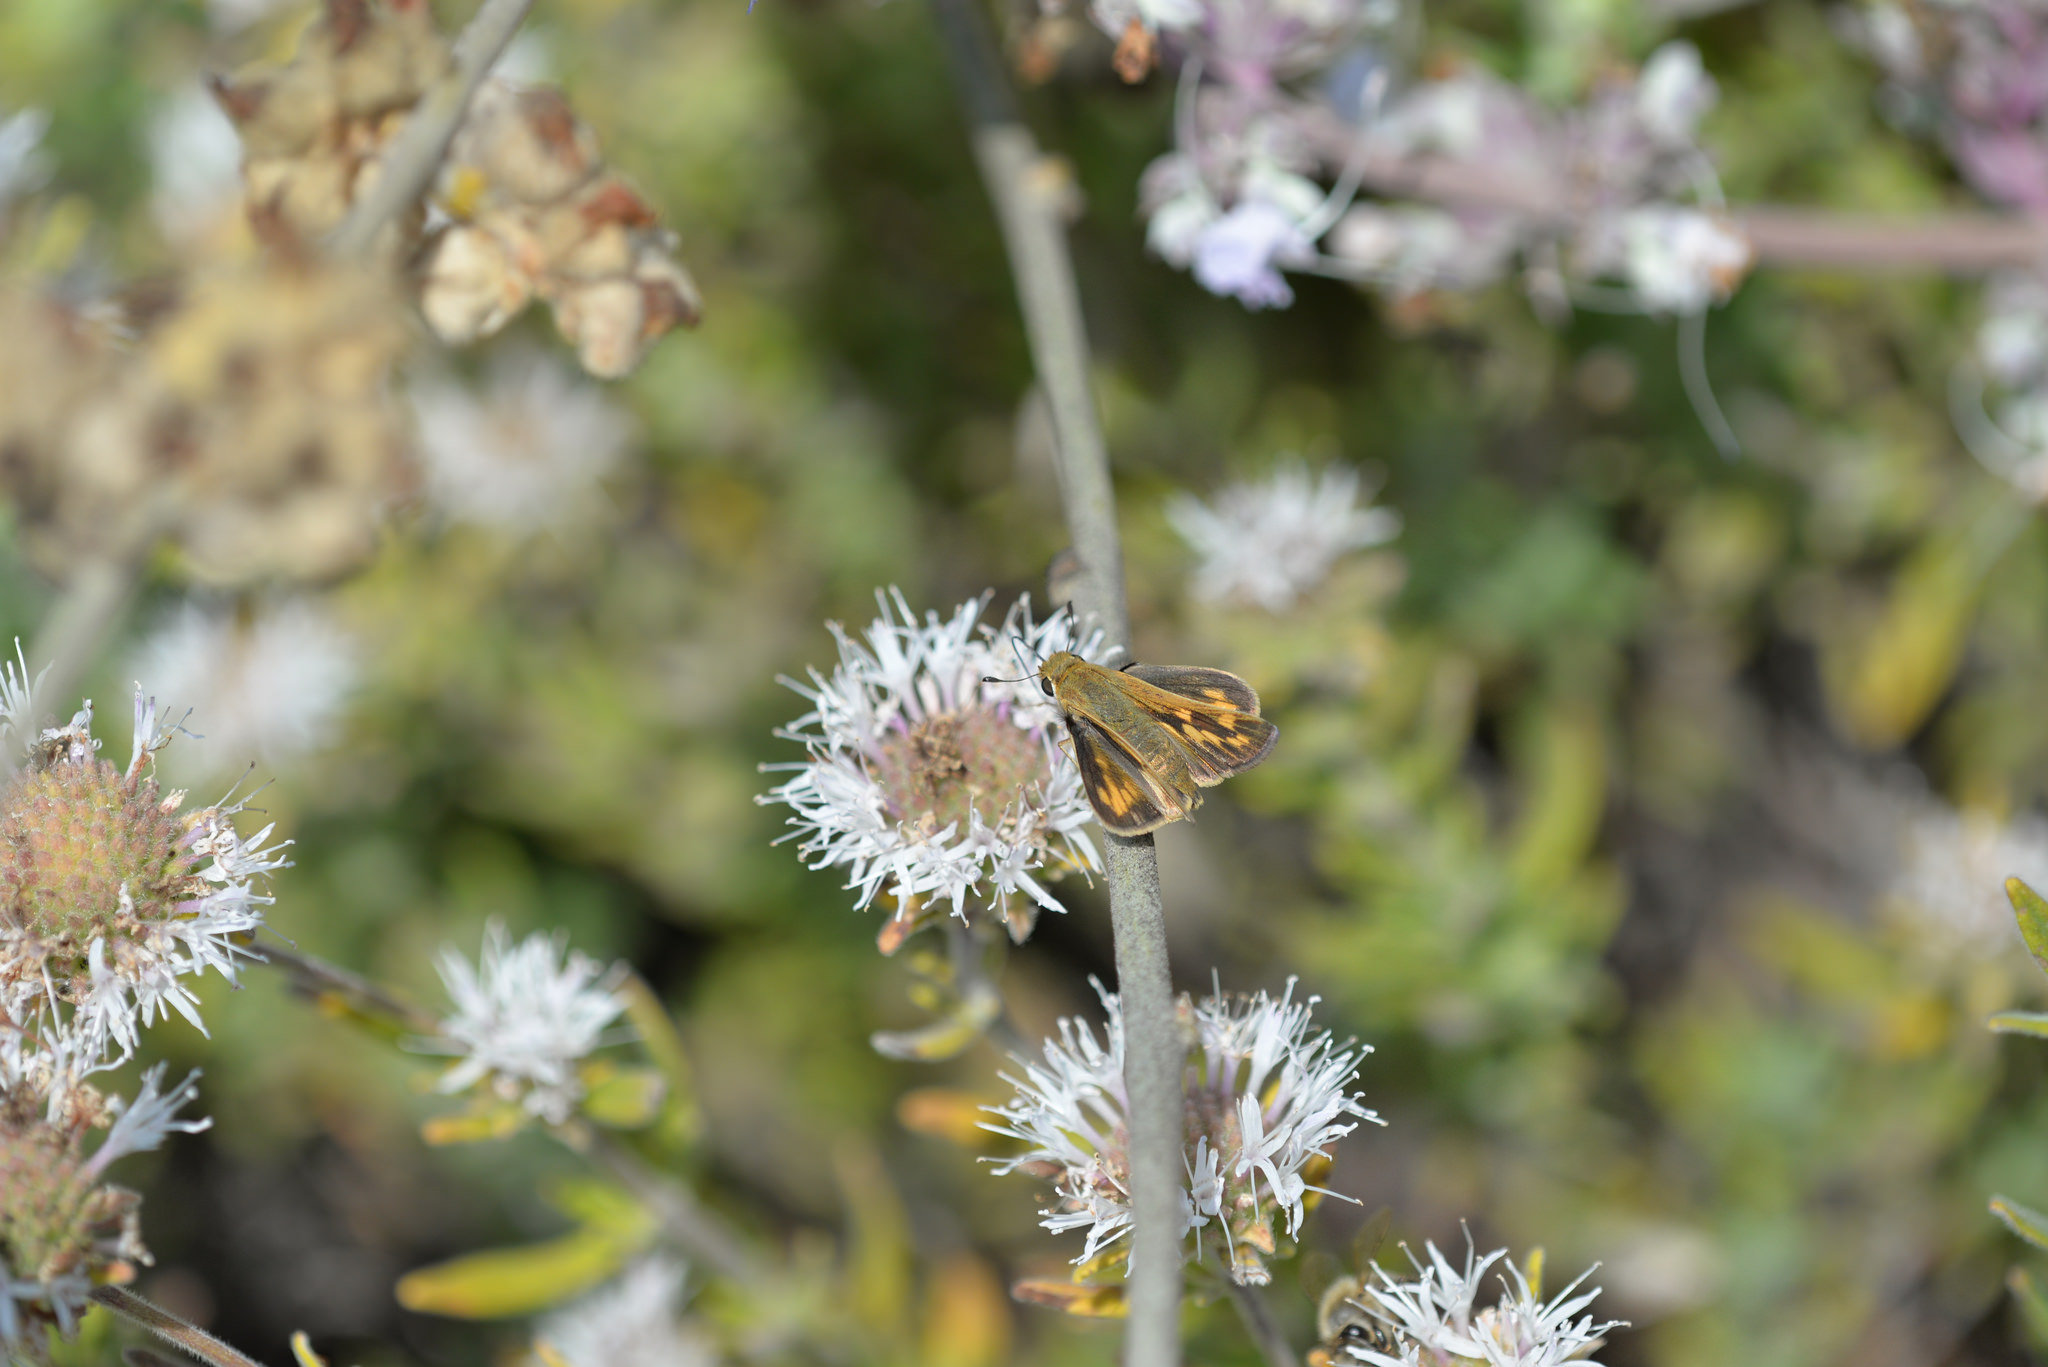 Butterfly on flower TBG 8-3-14 4 by Paul Sullivan is Licensed under CC by 2.0